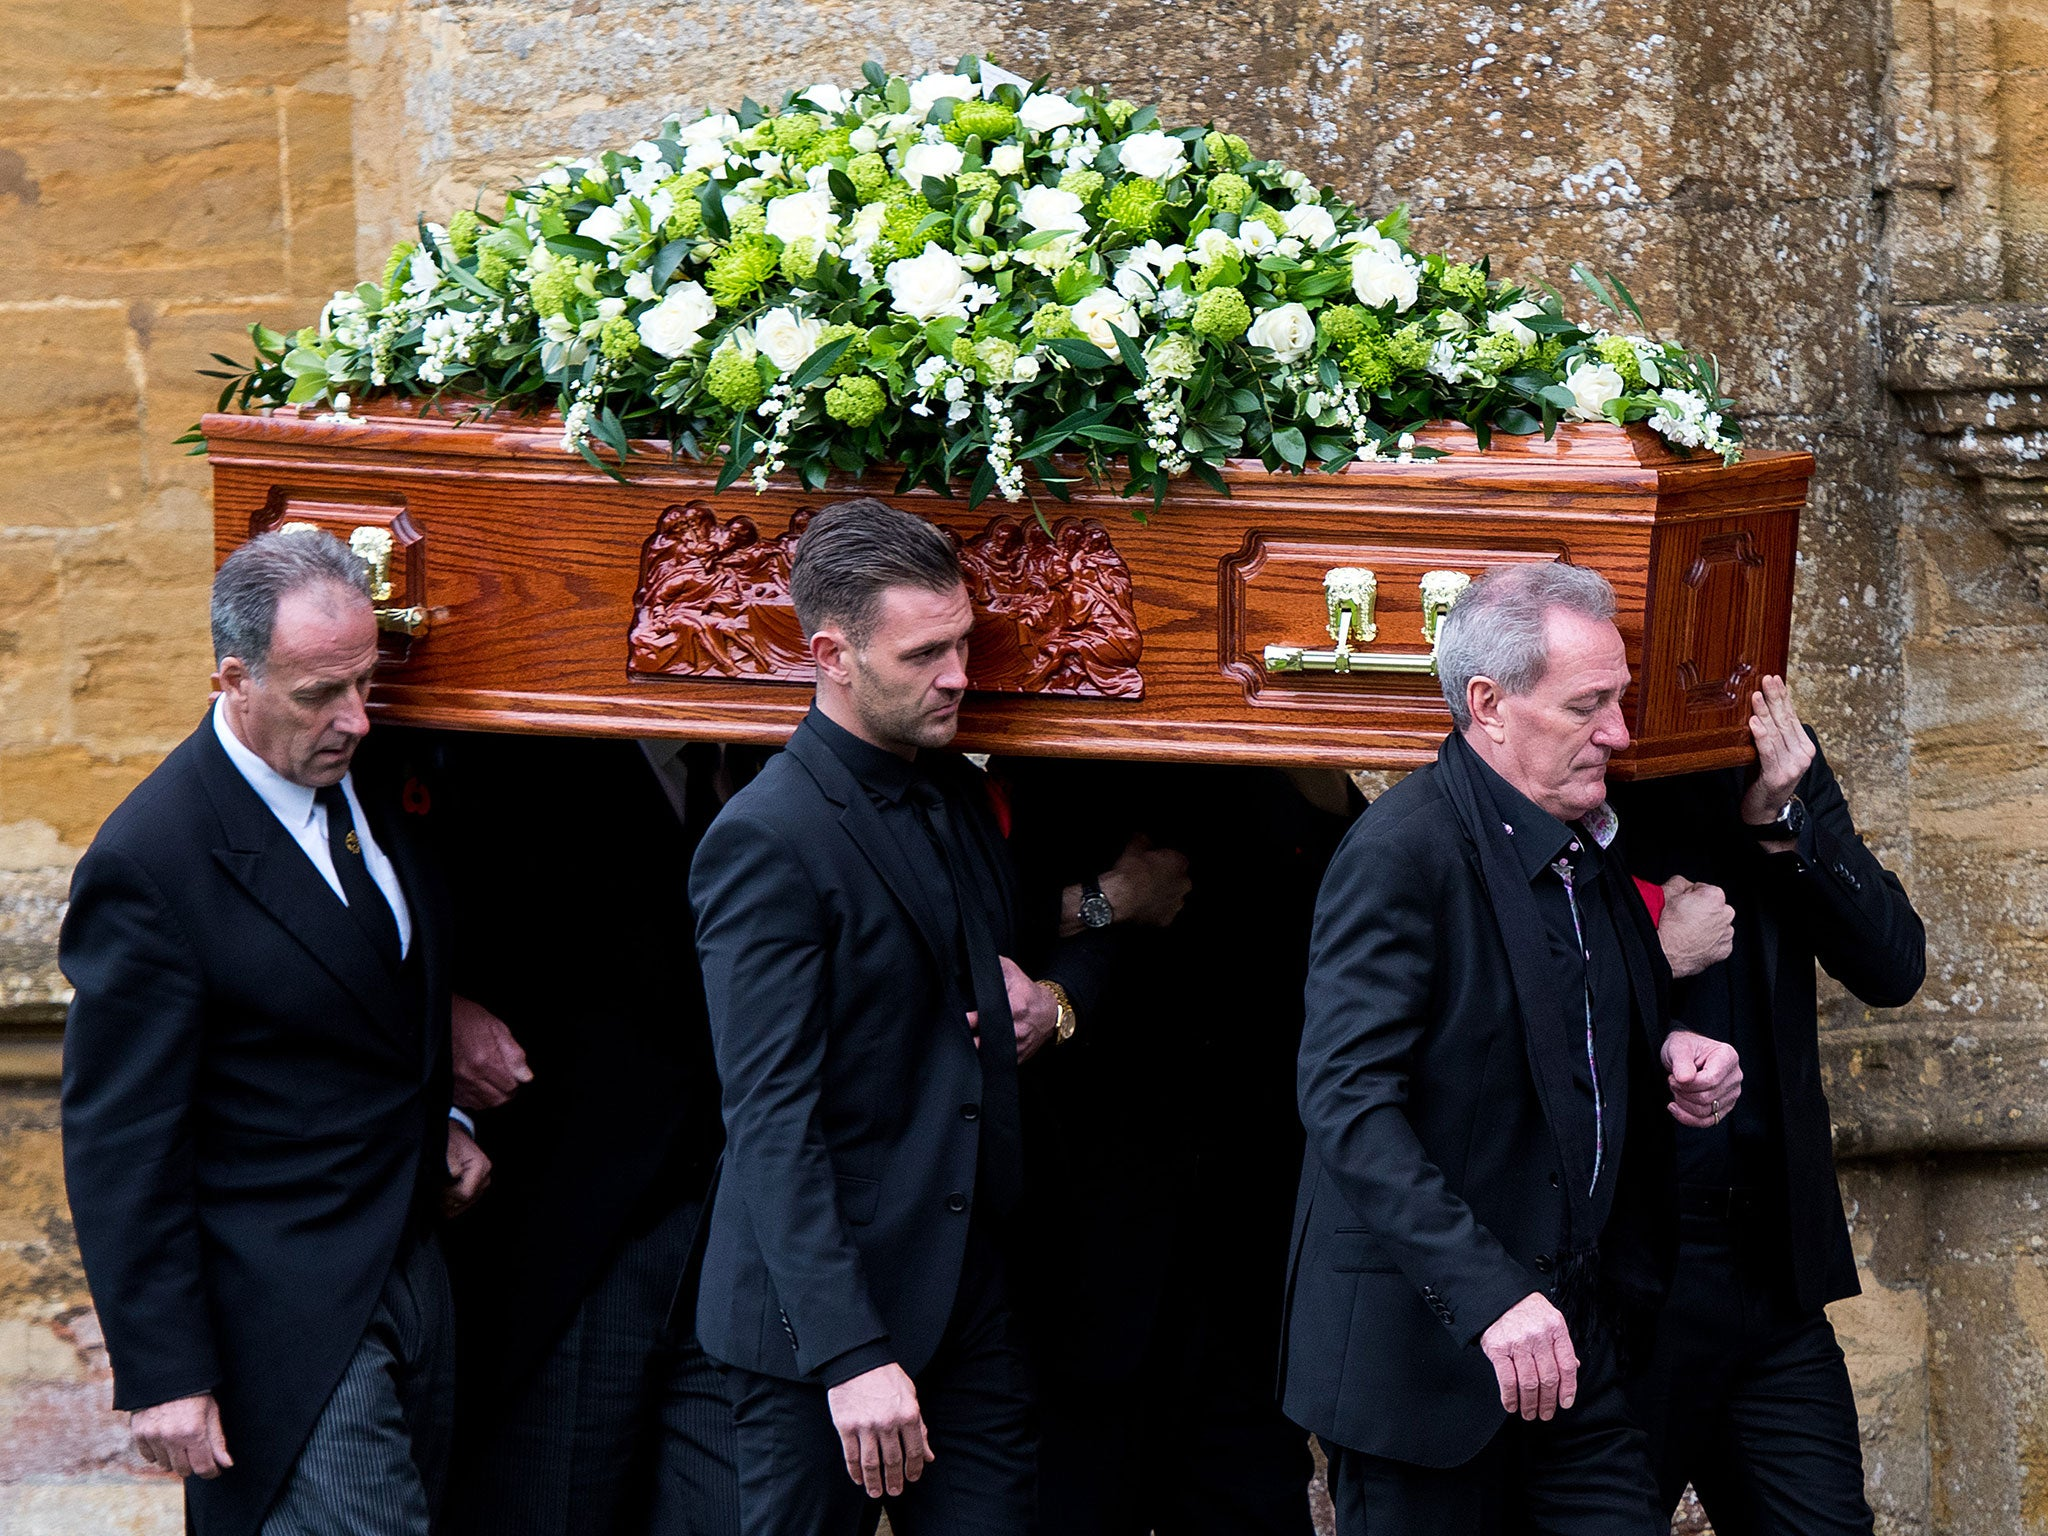 Http Www Independent Co Uk News People Lynda Bellingham Funeral Julian Fellowes Coleen Nolan And Stanley Tucci Pay Final Tributes At 9836054 Html